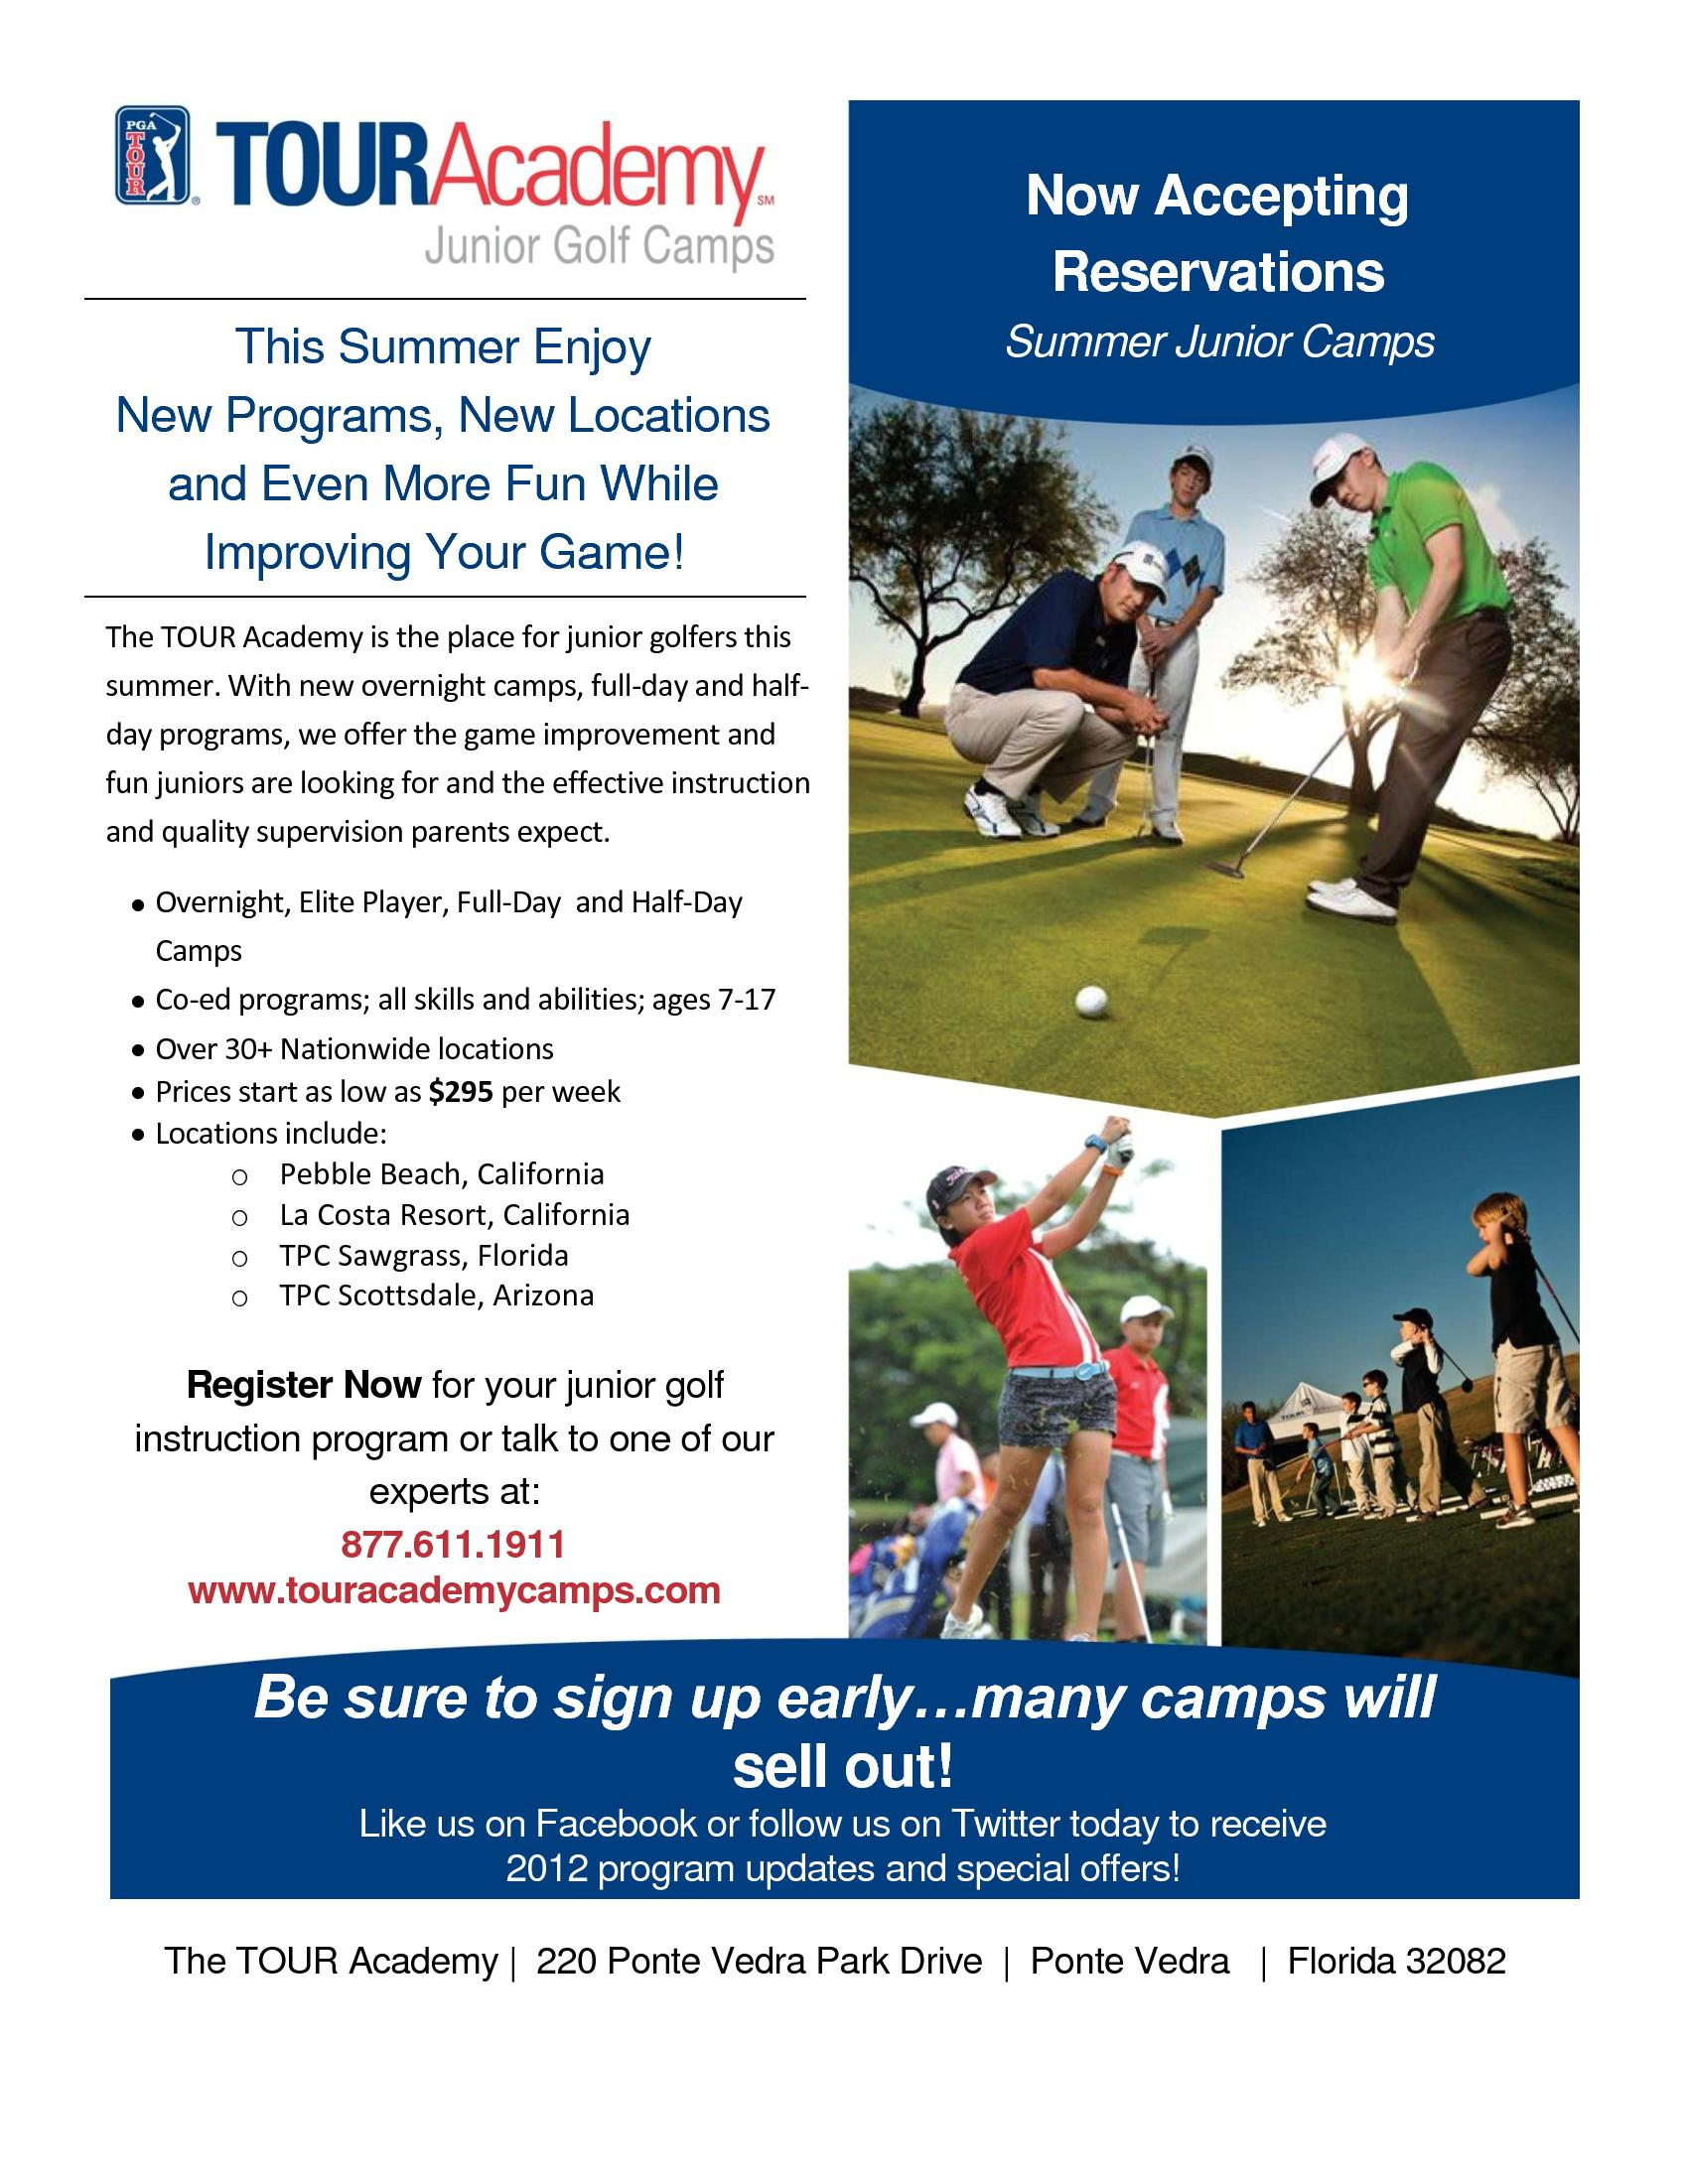 Tour Academy Junior Golf Camps